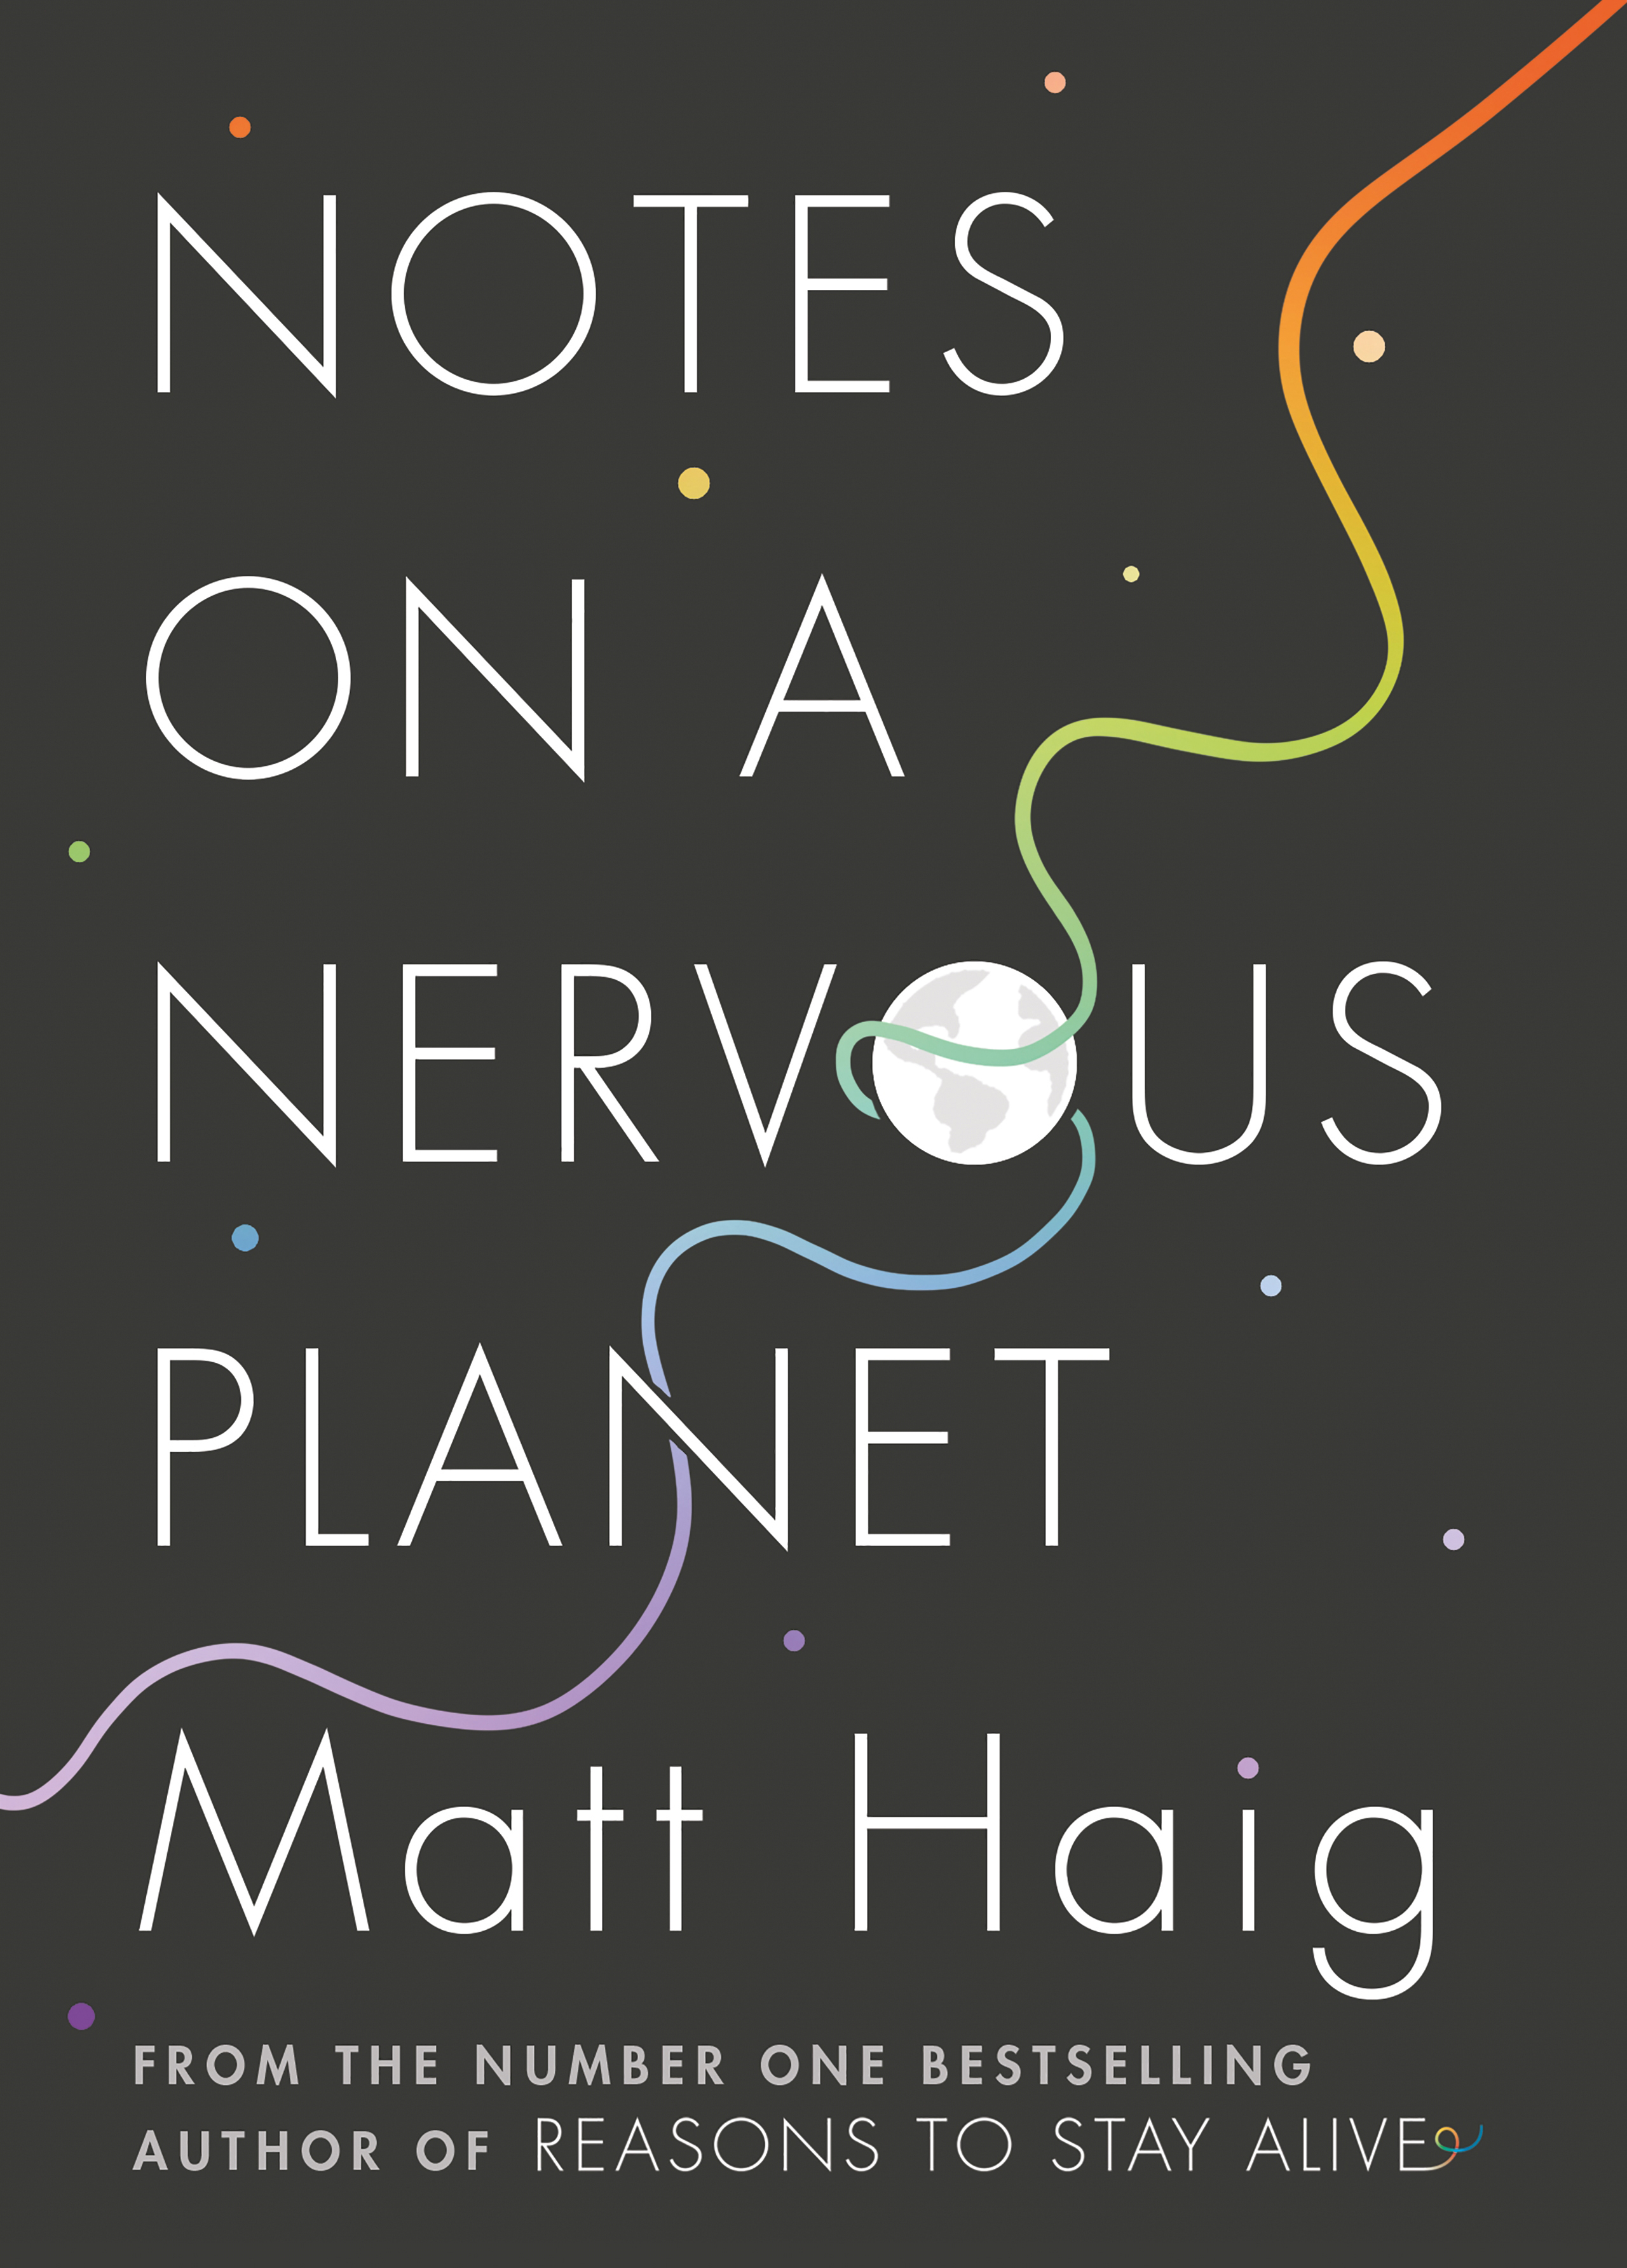 Notes on a Nervous Planet by Matt Haig, ISBN: 9781786892676